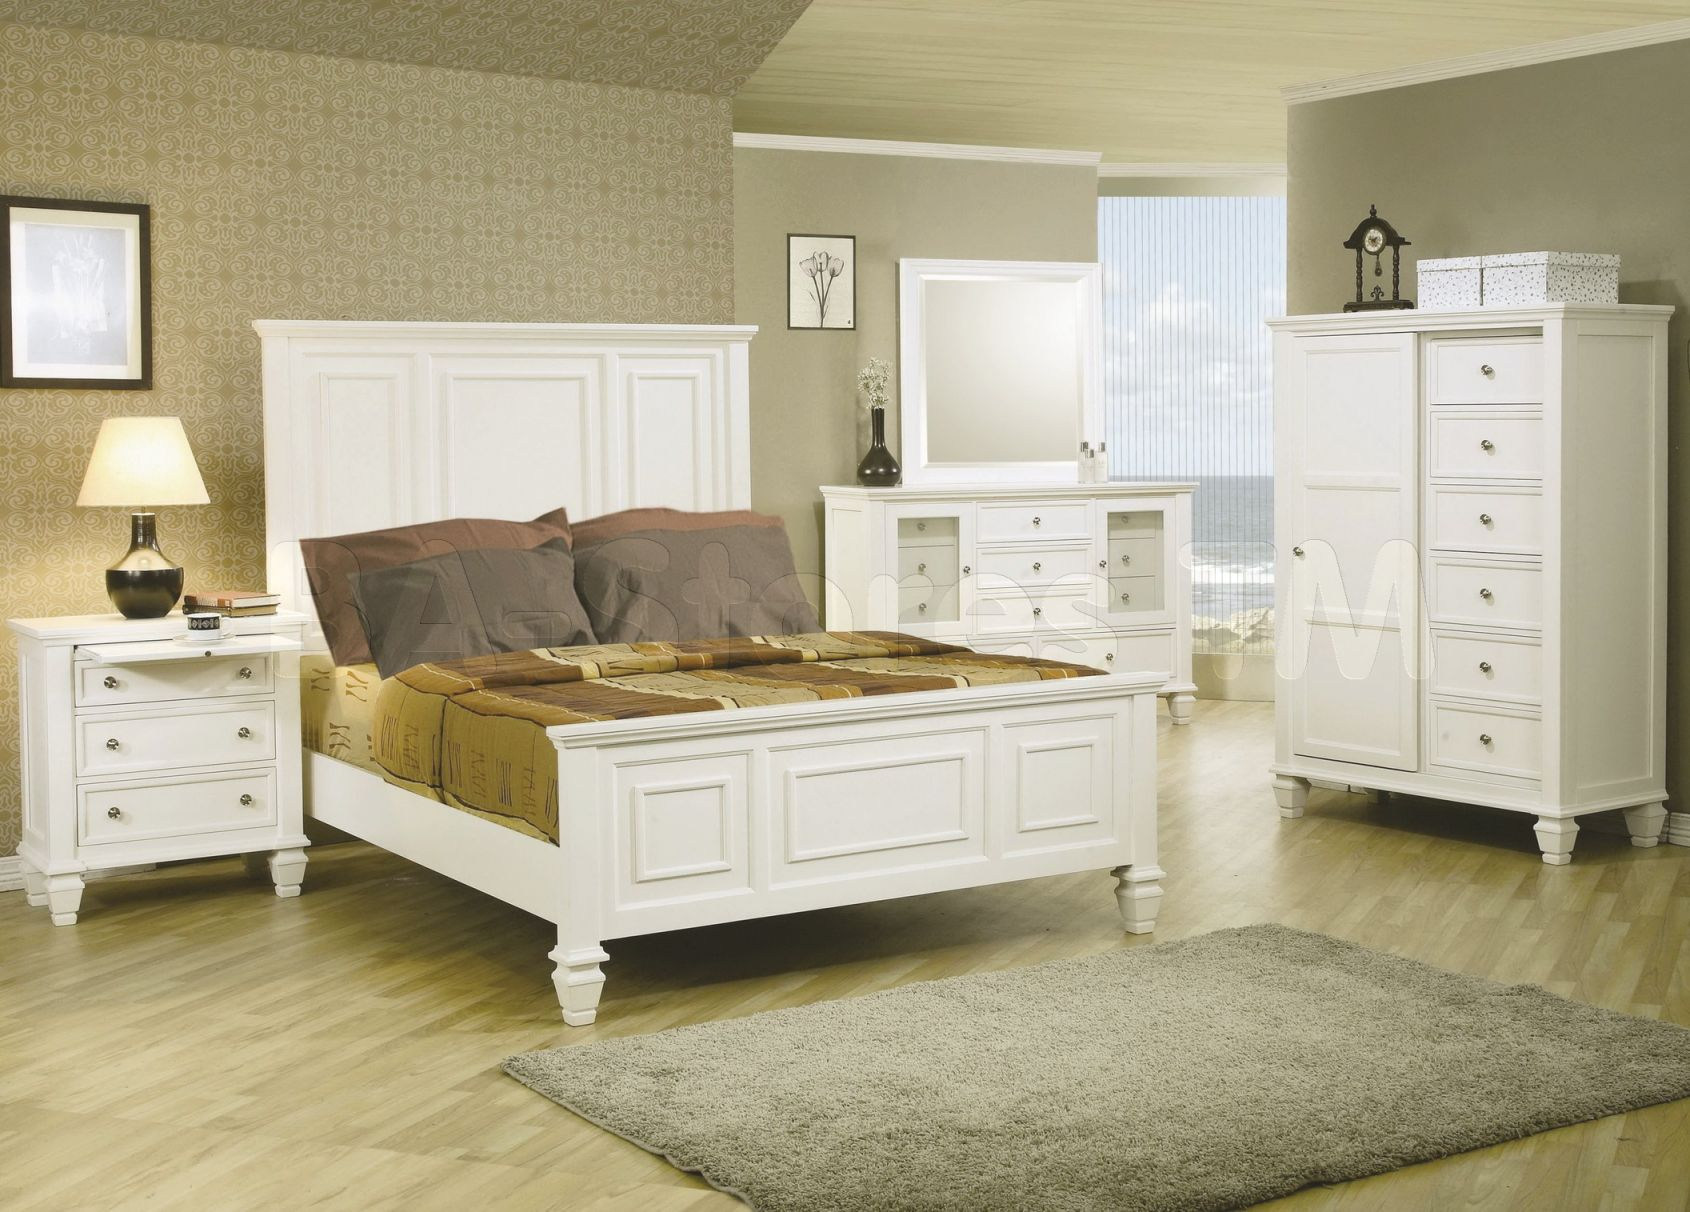 White Bedroom Furniture Sets For Adults | Cileather Home pertaining to Beautiful Cheap White Bedroom Furniture Sets